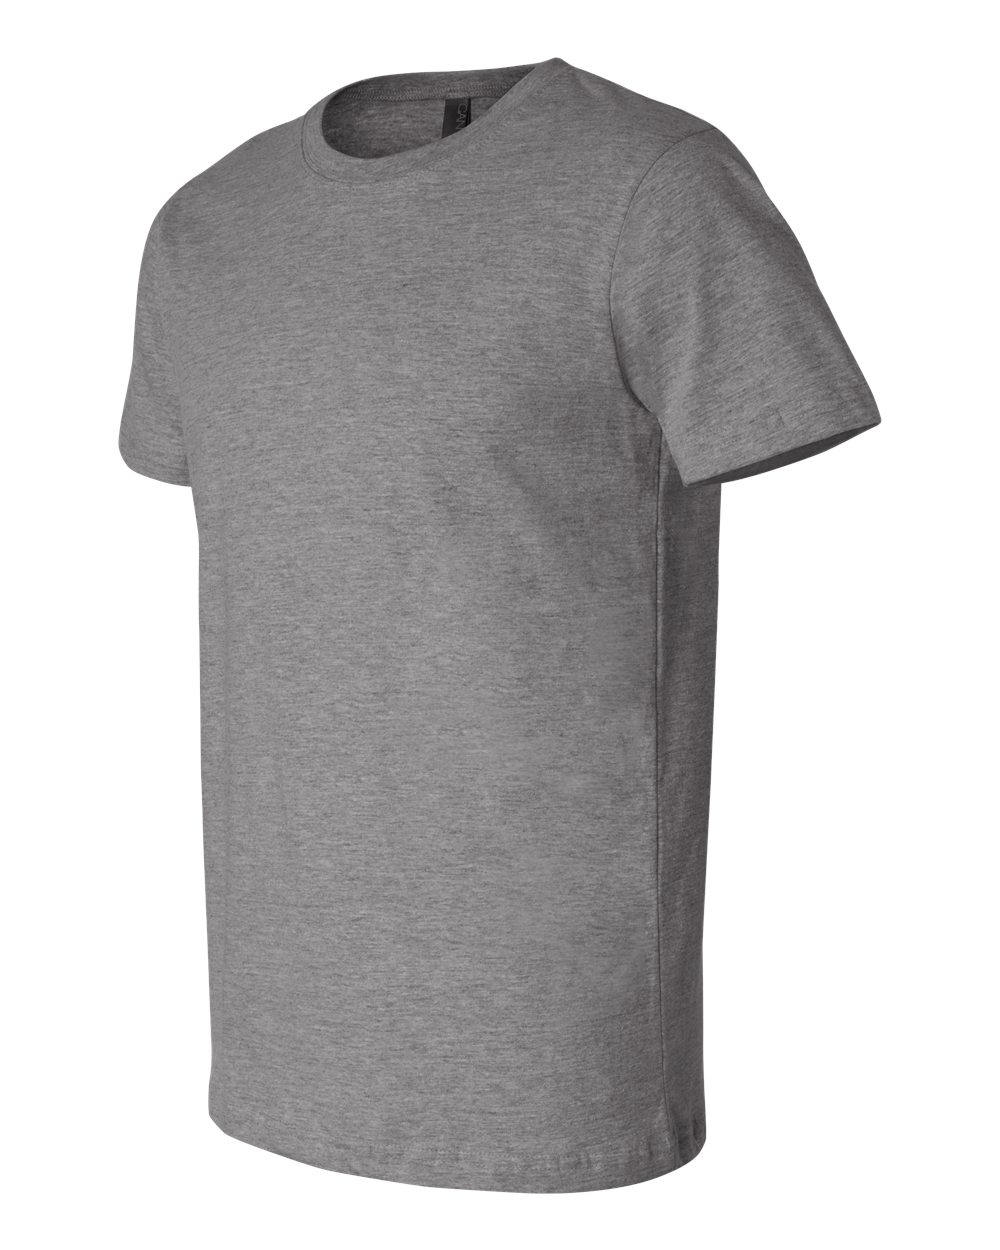 Canvas 3001 - A step up from basic. This ring spun cotton tee is light weight and semi-fitted. This is the perfect tee if you are looking to upgrade without breaking the bank.